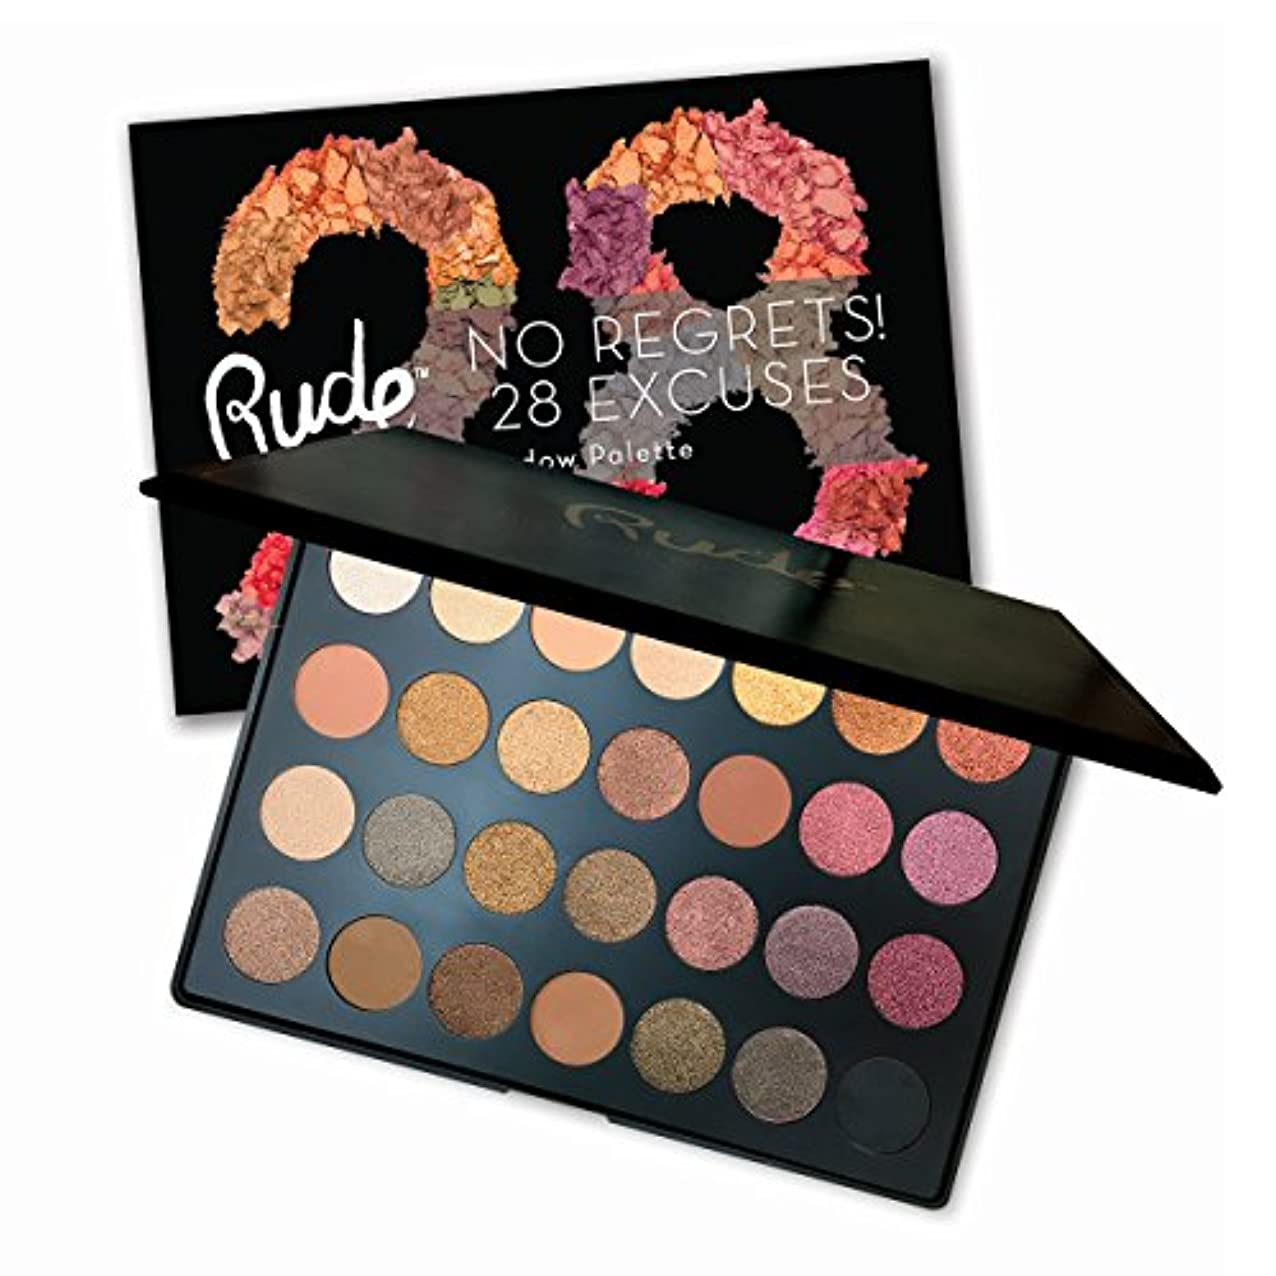 接続詞カスタム間欠RUDE No Regrets! 28 Excuses Eyeshadow Palette - Scorpio (並行輸入品)